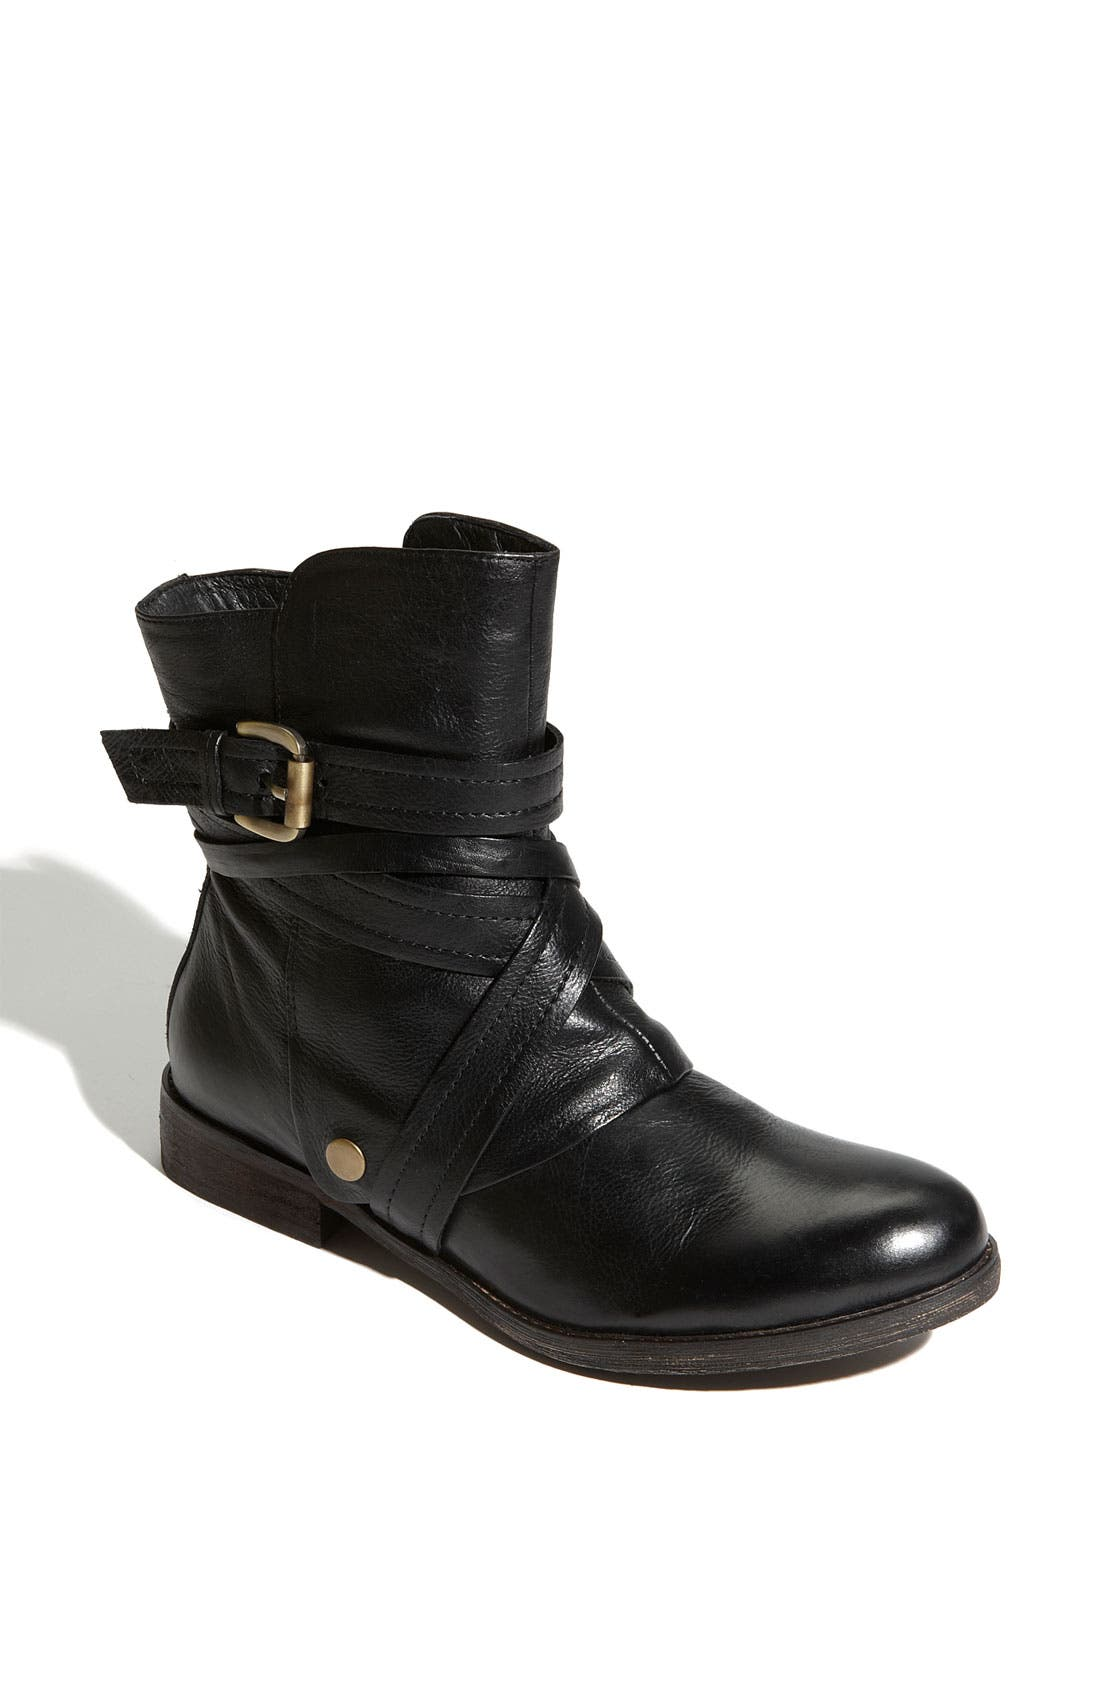 Main Image - Miz Mooz 'Bailey' Boot